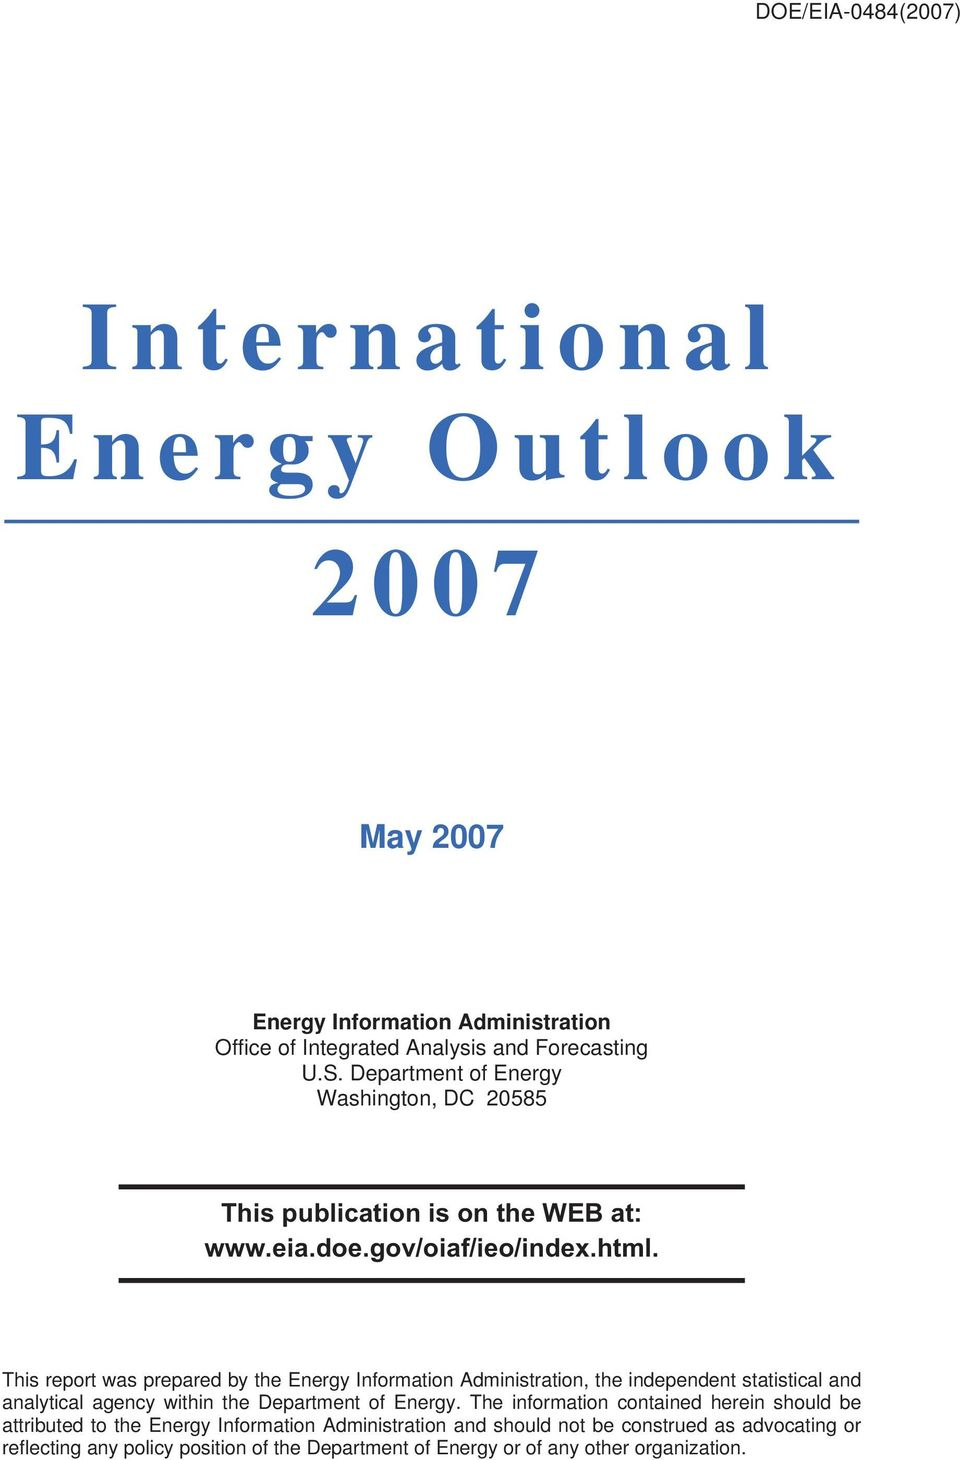 This report was prepared by the Energy Information Administration, the independent statistical and analytical agency within the Department of Energy.